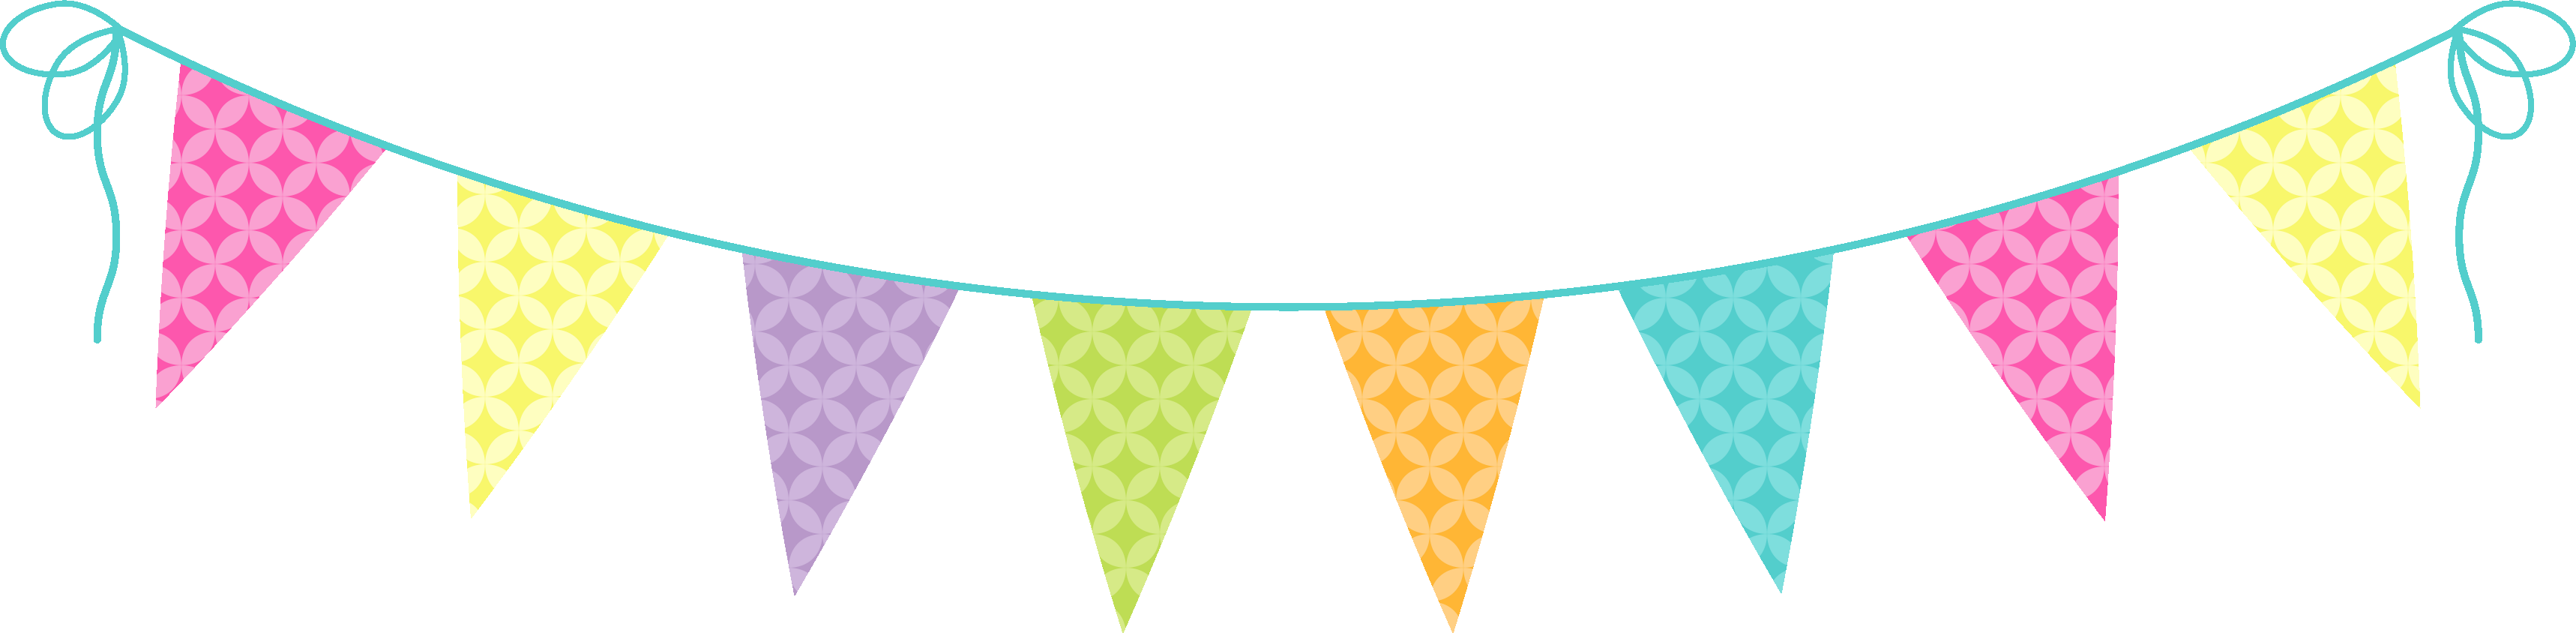 Fiesta banner clipart colorful. Pennant triangle